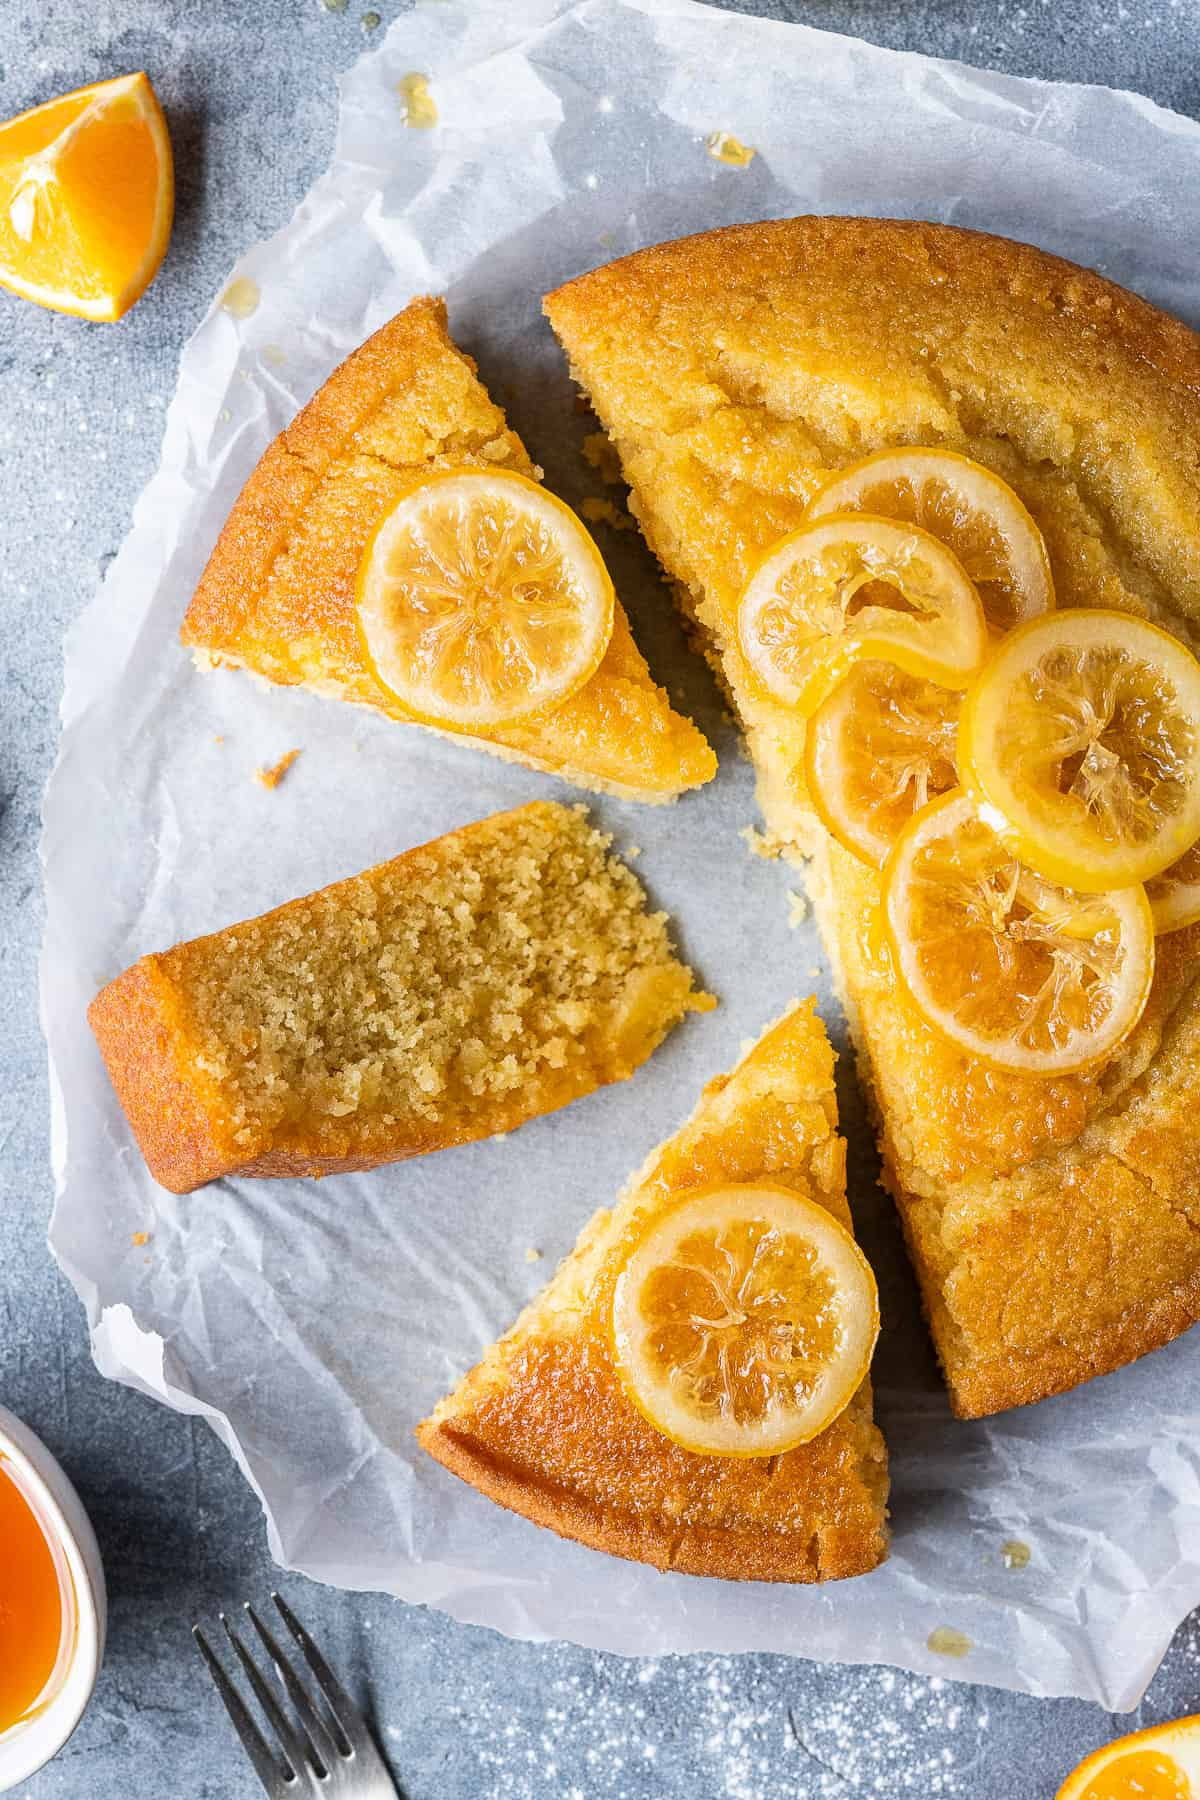 Slices of vegan semolina cake topped with candied lemon slices on a sheet of white baking parchment.